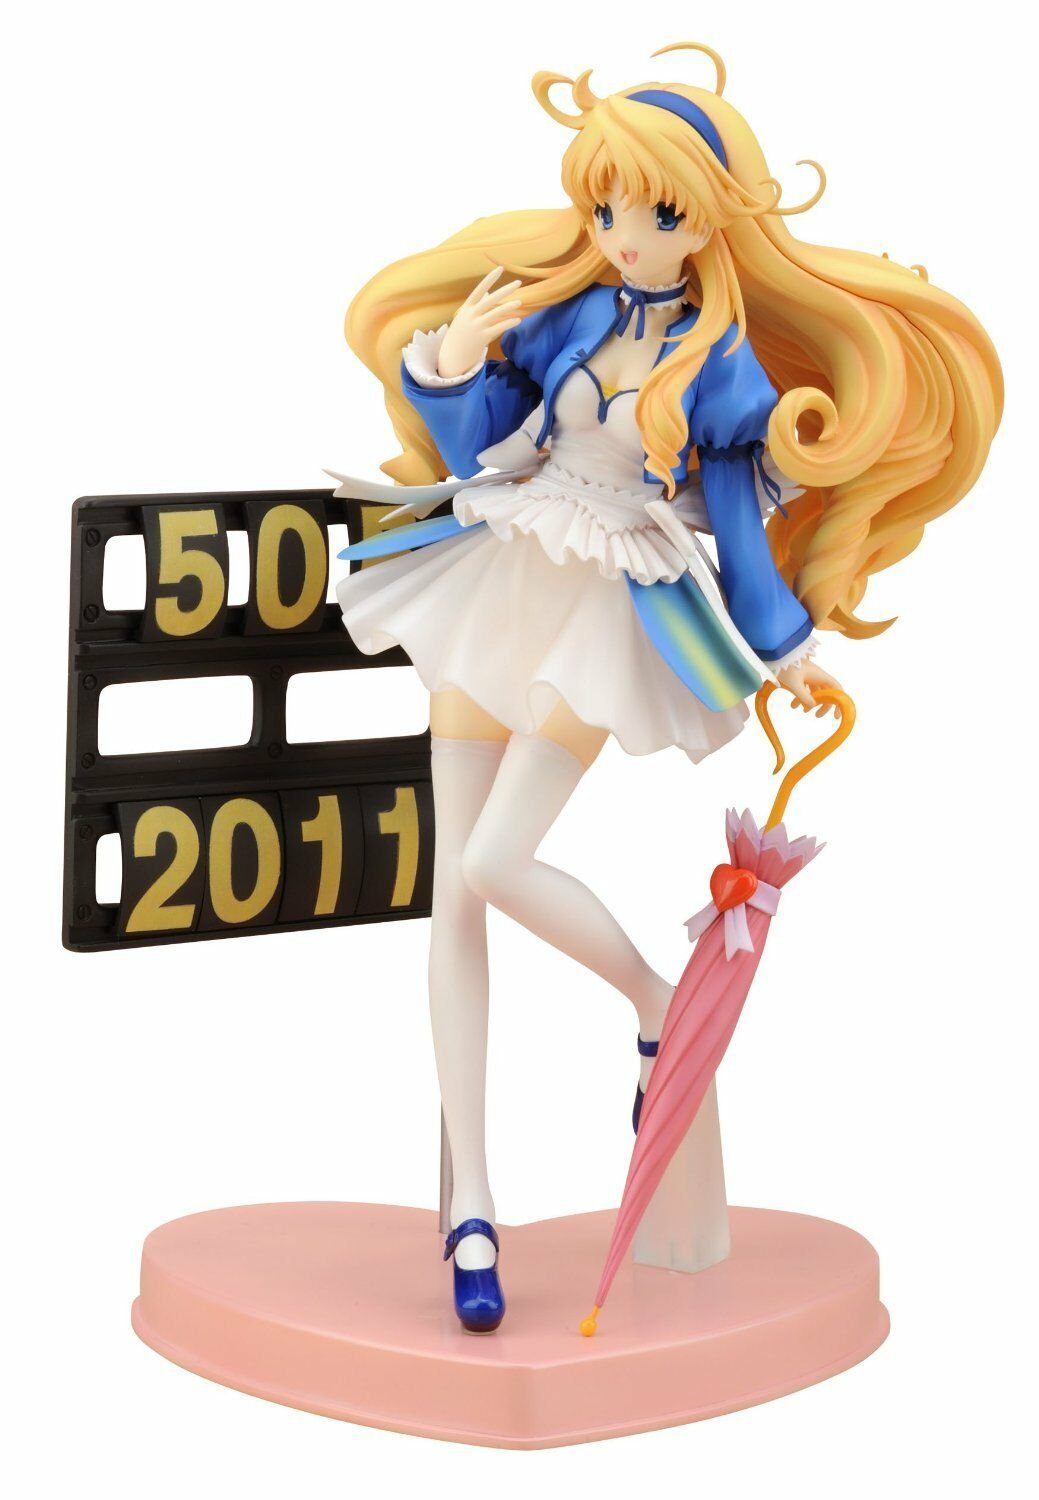 Race Queen Alice (1 8 scale PVC Figure) Kotobukiya Kyosho Alice Motors Rare UK